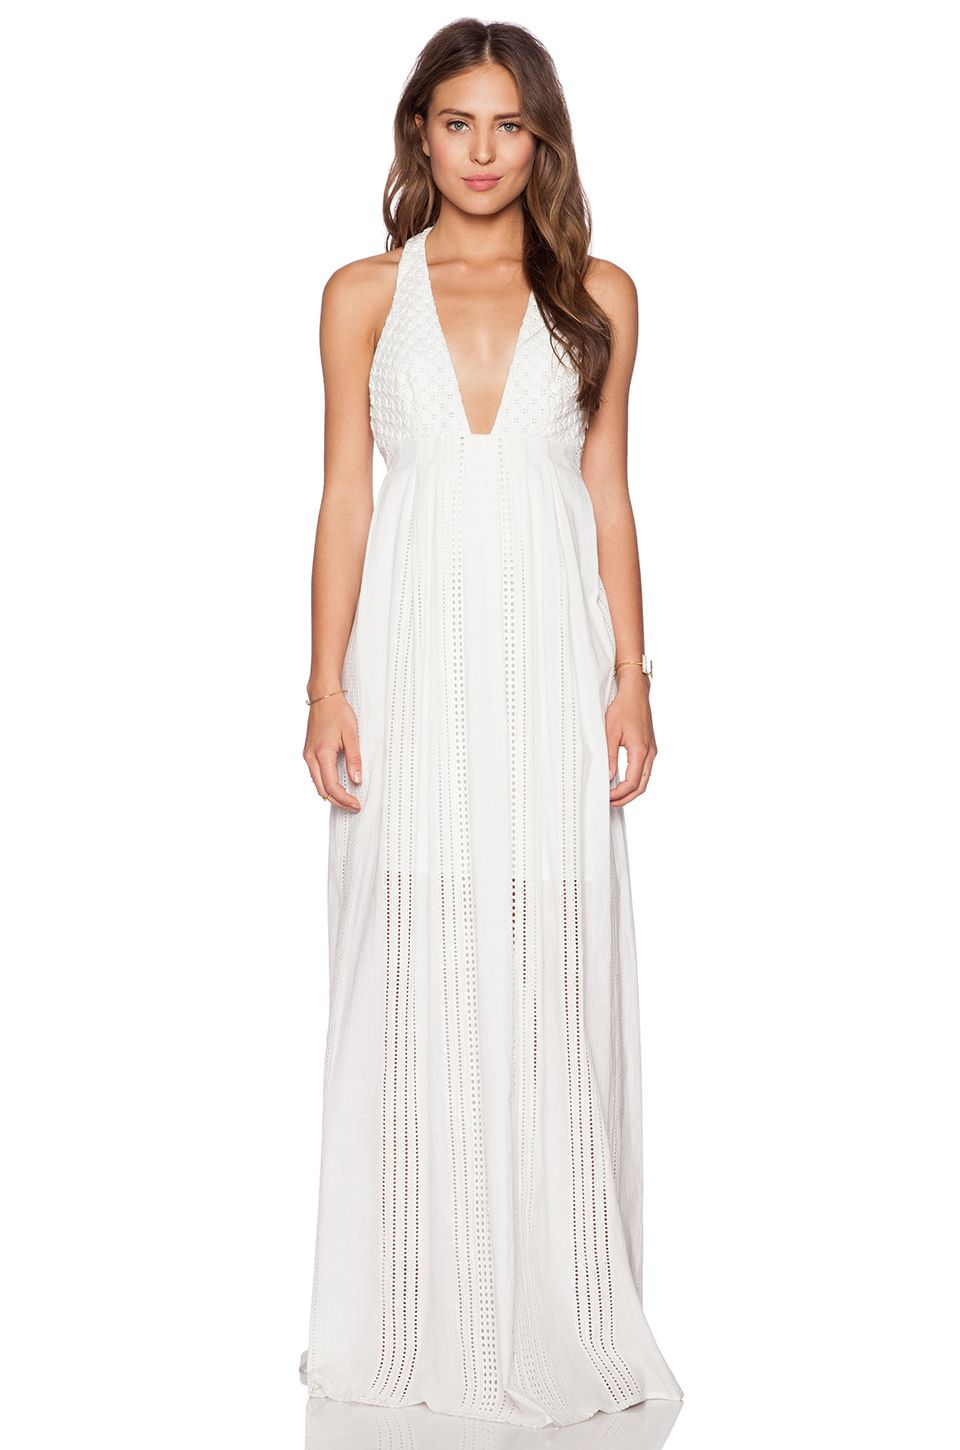 THE JETSET DIARIES North of Fira Maxi Dress in White | REVOLVE ...